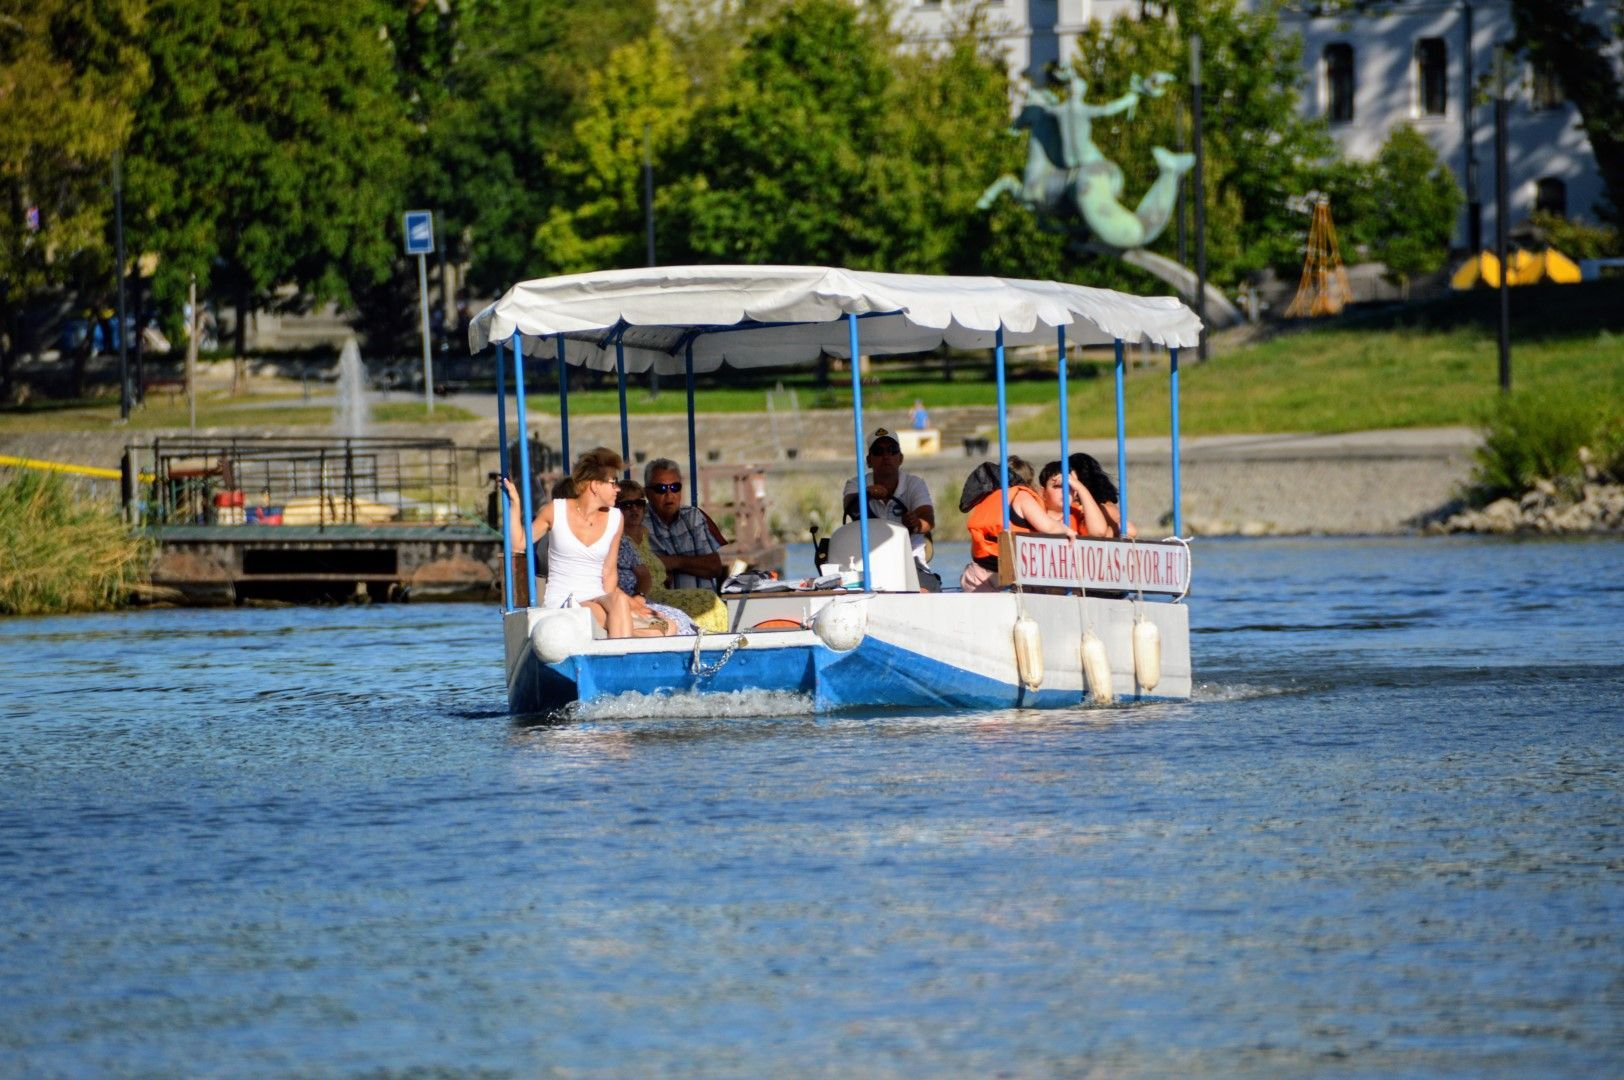 <a href='http://hellogyor.hu/en/active_leisure/boat-tour-in-gyor/'>Boat tour in Győr</a>